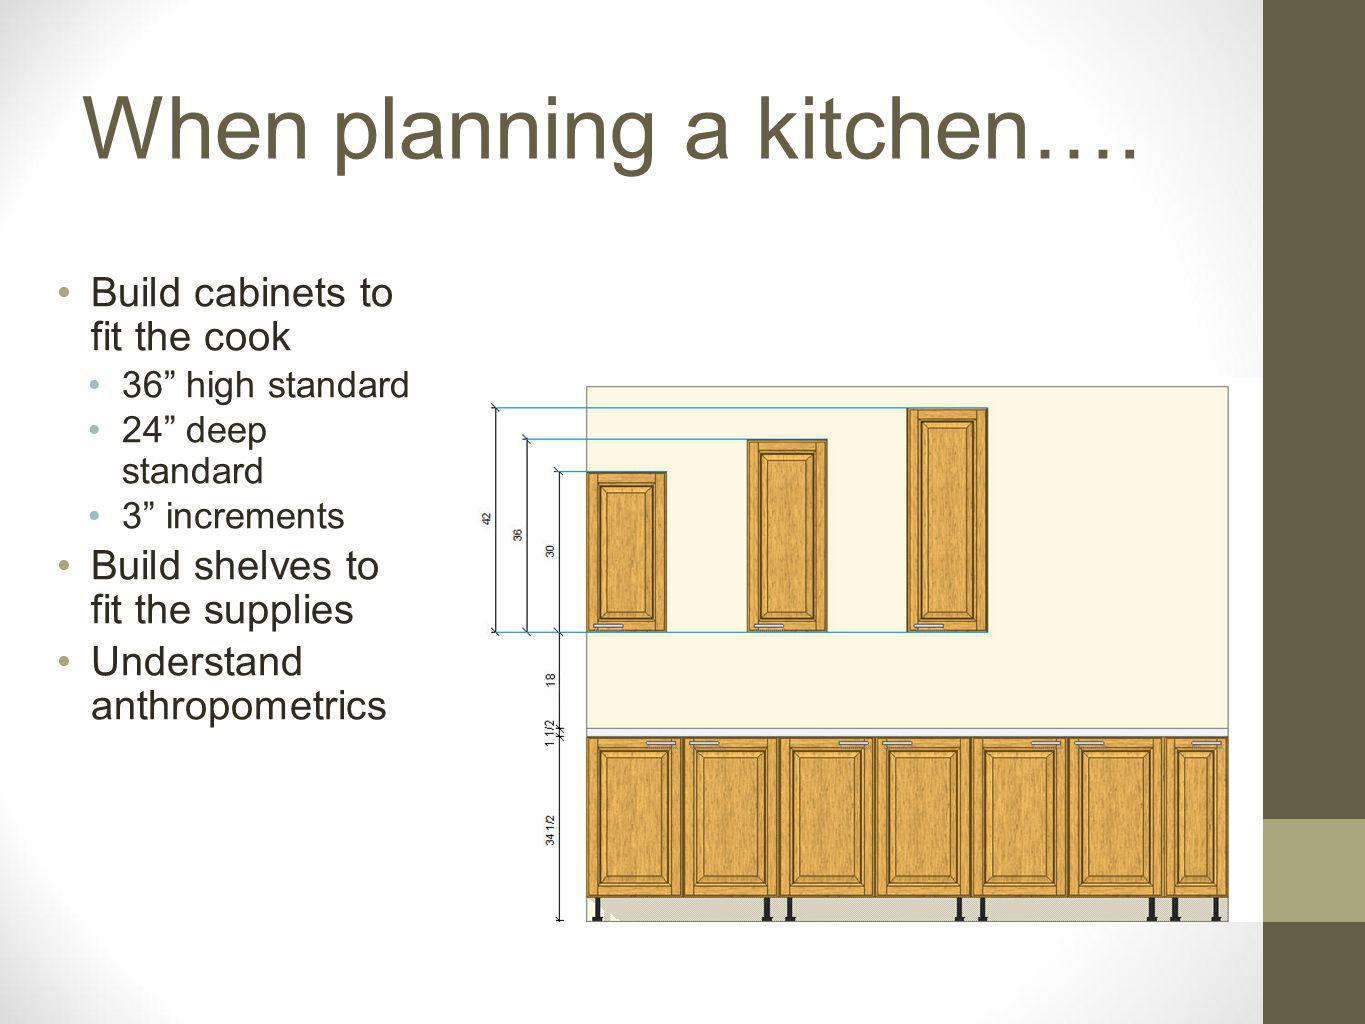 When planning a kitchen….